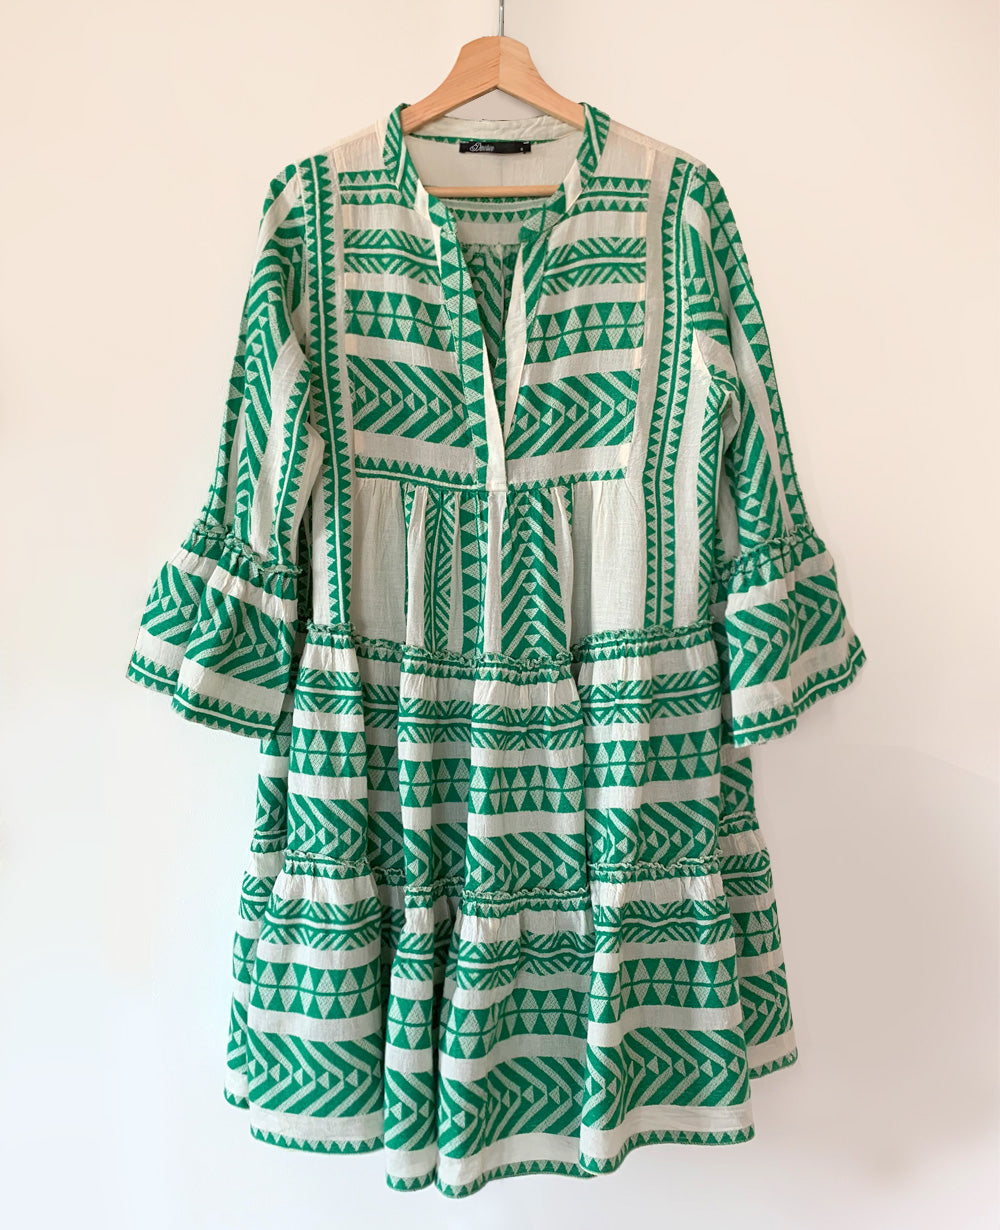 devotion tunika kleid grÜn / devotion dress green – lemoni